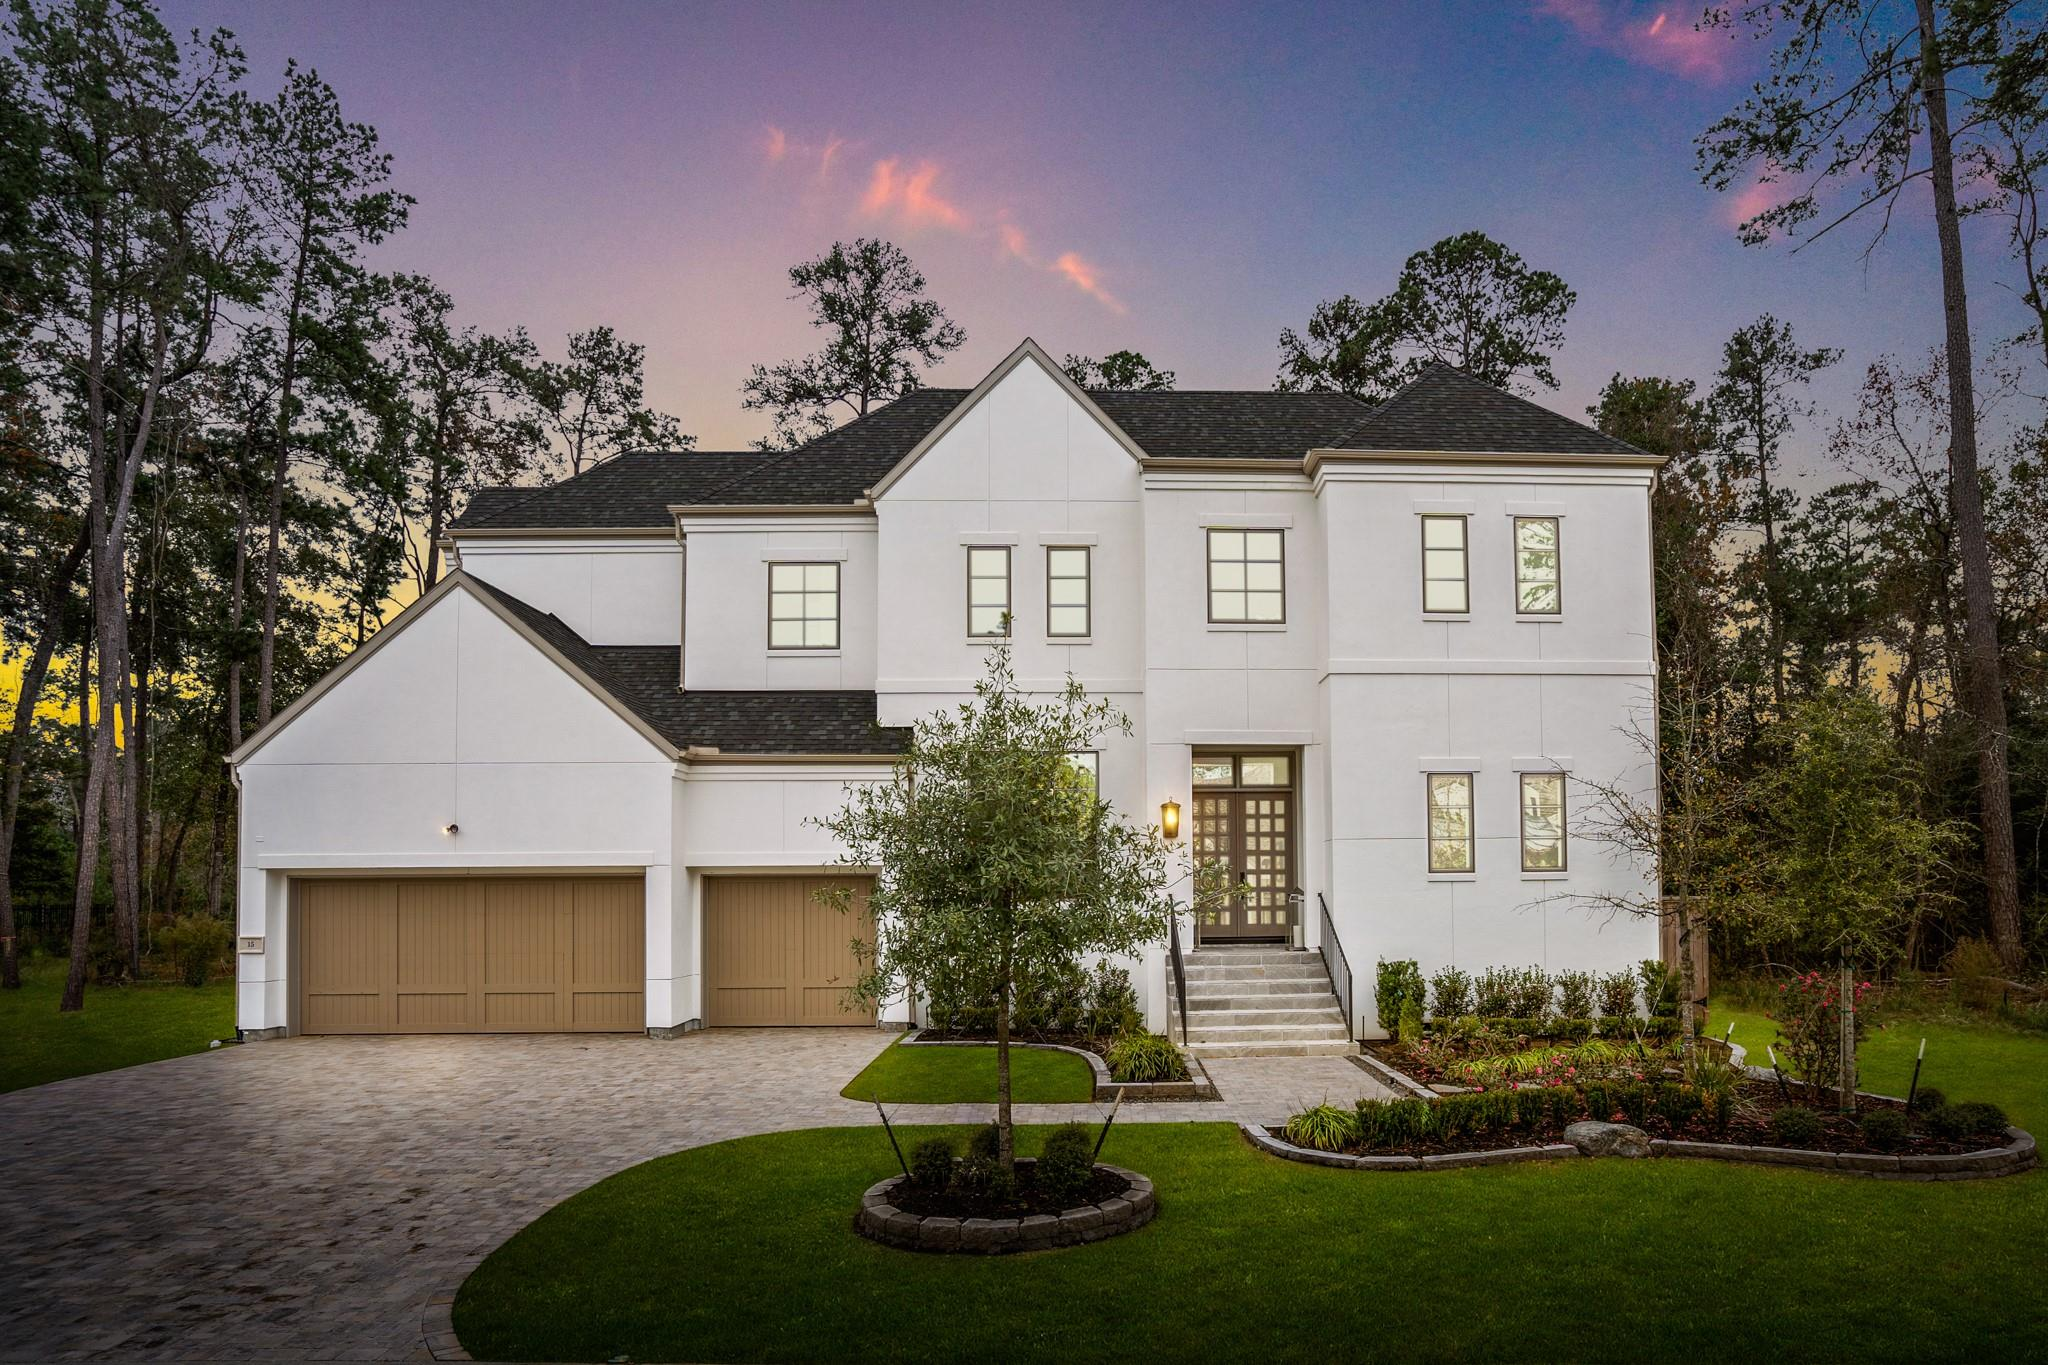 15 Dara Beth Court Property Photo - The Woodlands, TX real estate listing